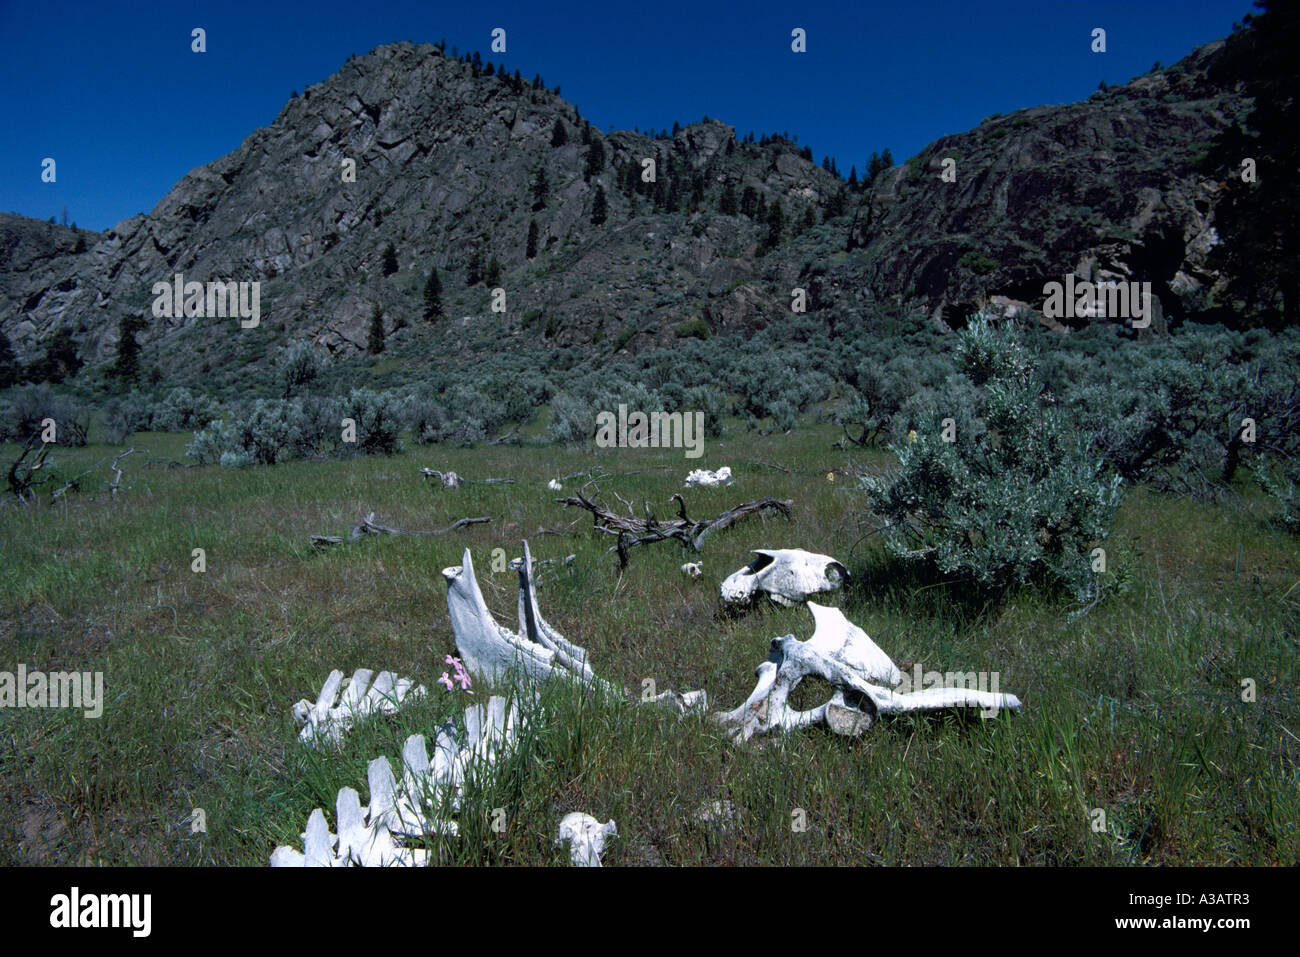 An Animal Skeleton in the Pocket Desert near Osoyoos in the South Okanagan Valley of British Columbia Canada - Stock Image